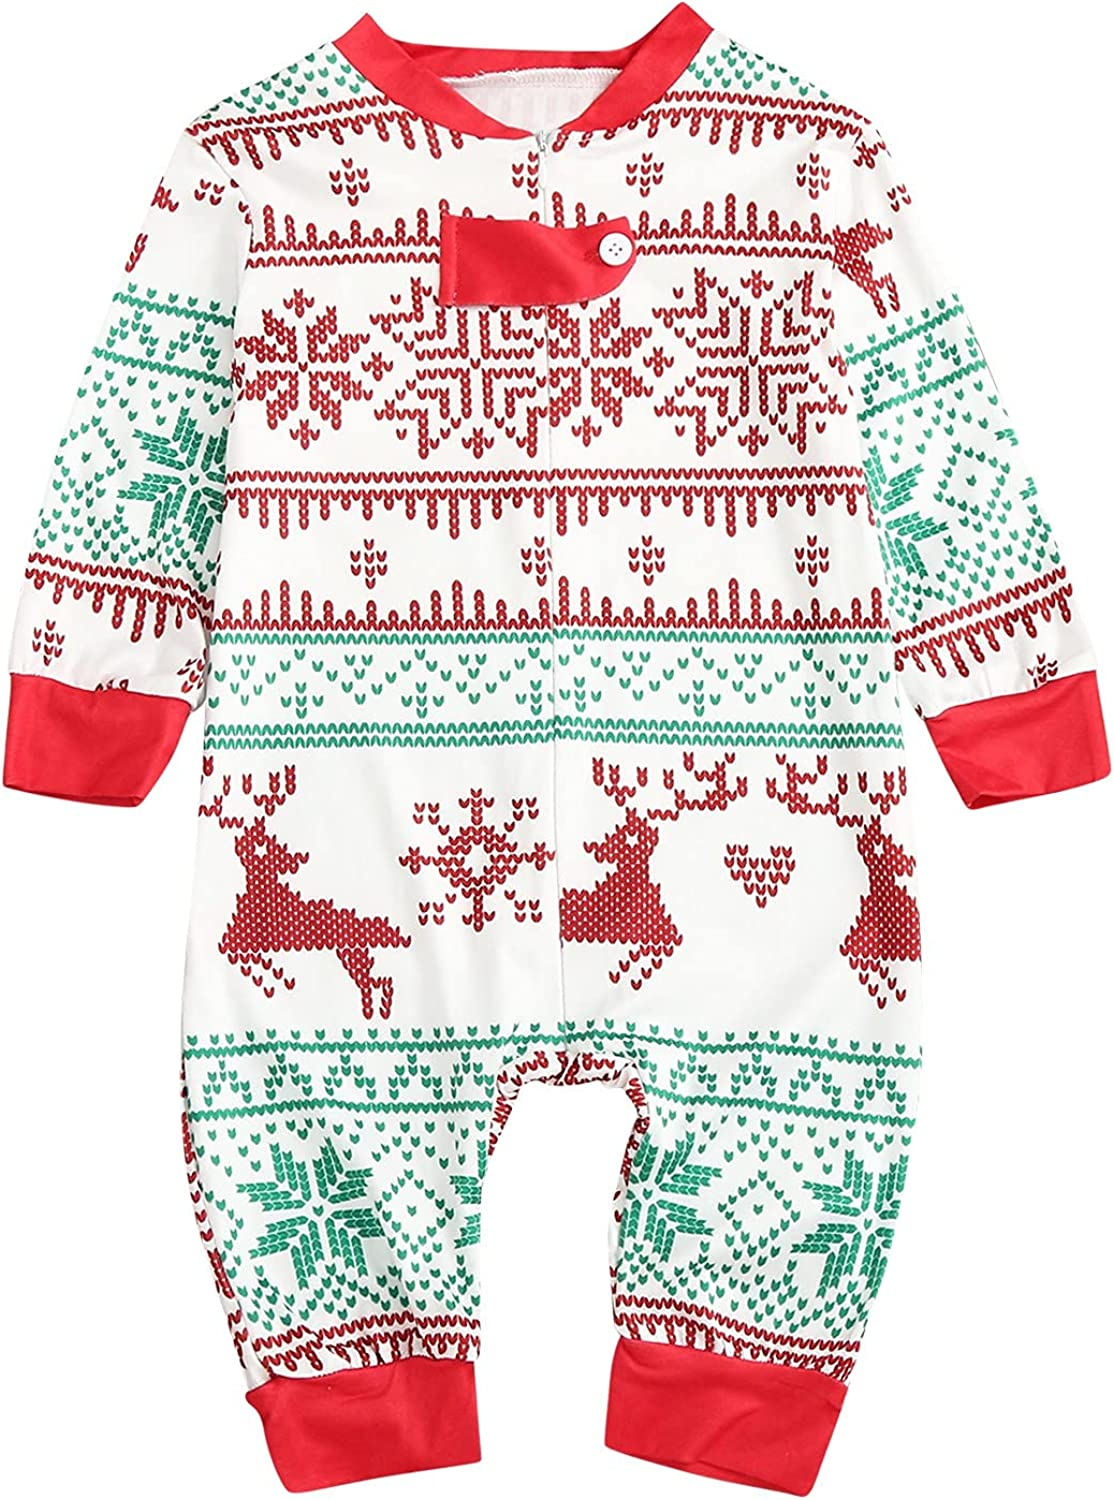 Christmas Pajamas for Family Max 58% OFF Industry No. 1 with Baby Mum Clothes Pjs Matching